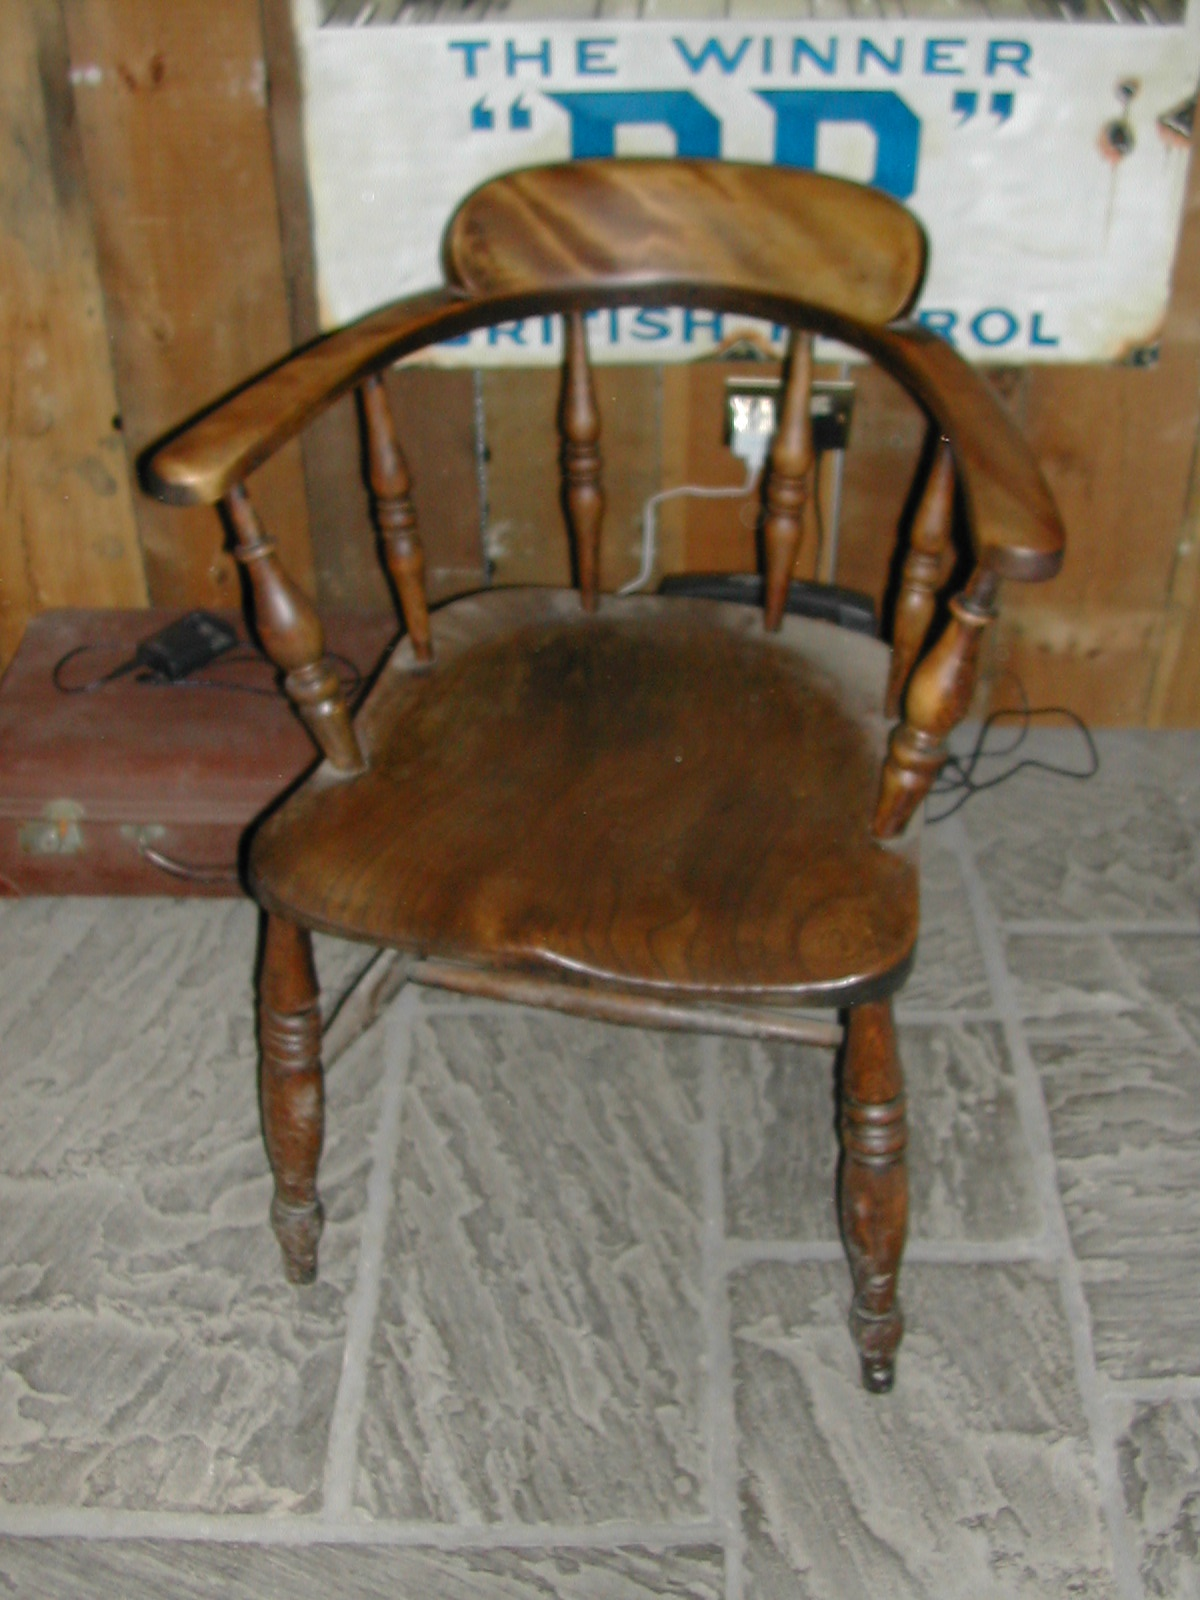 bensreckyard ebay photo Smokers chair 6